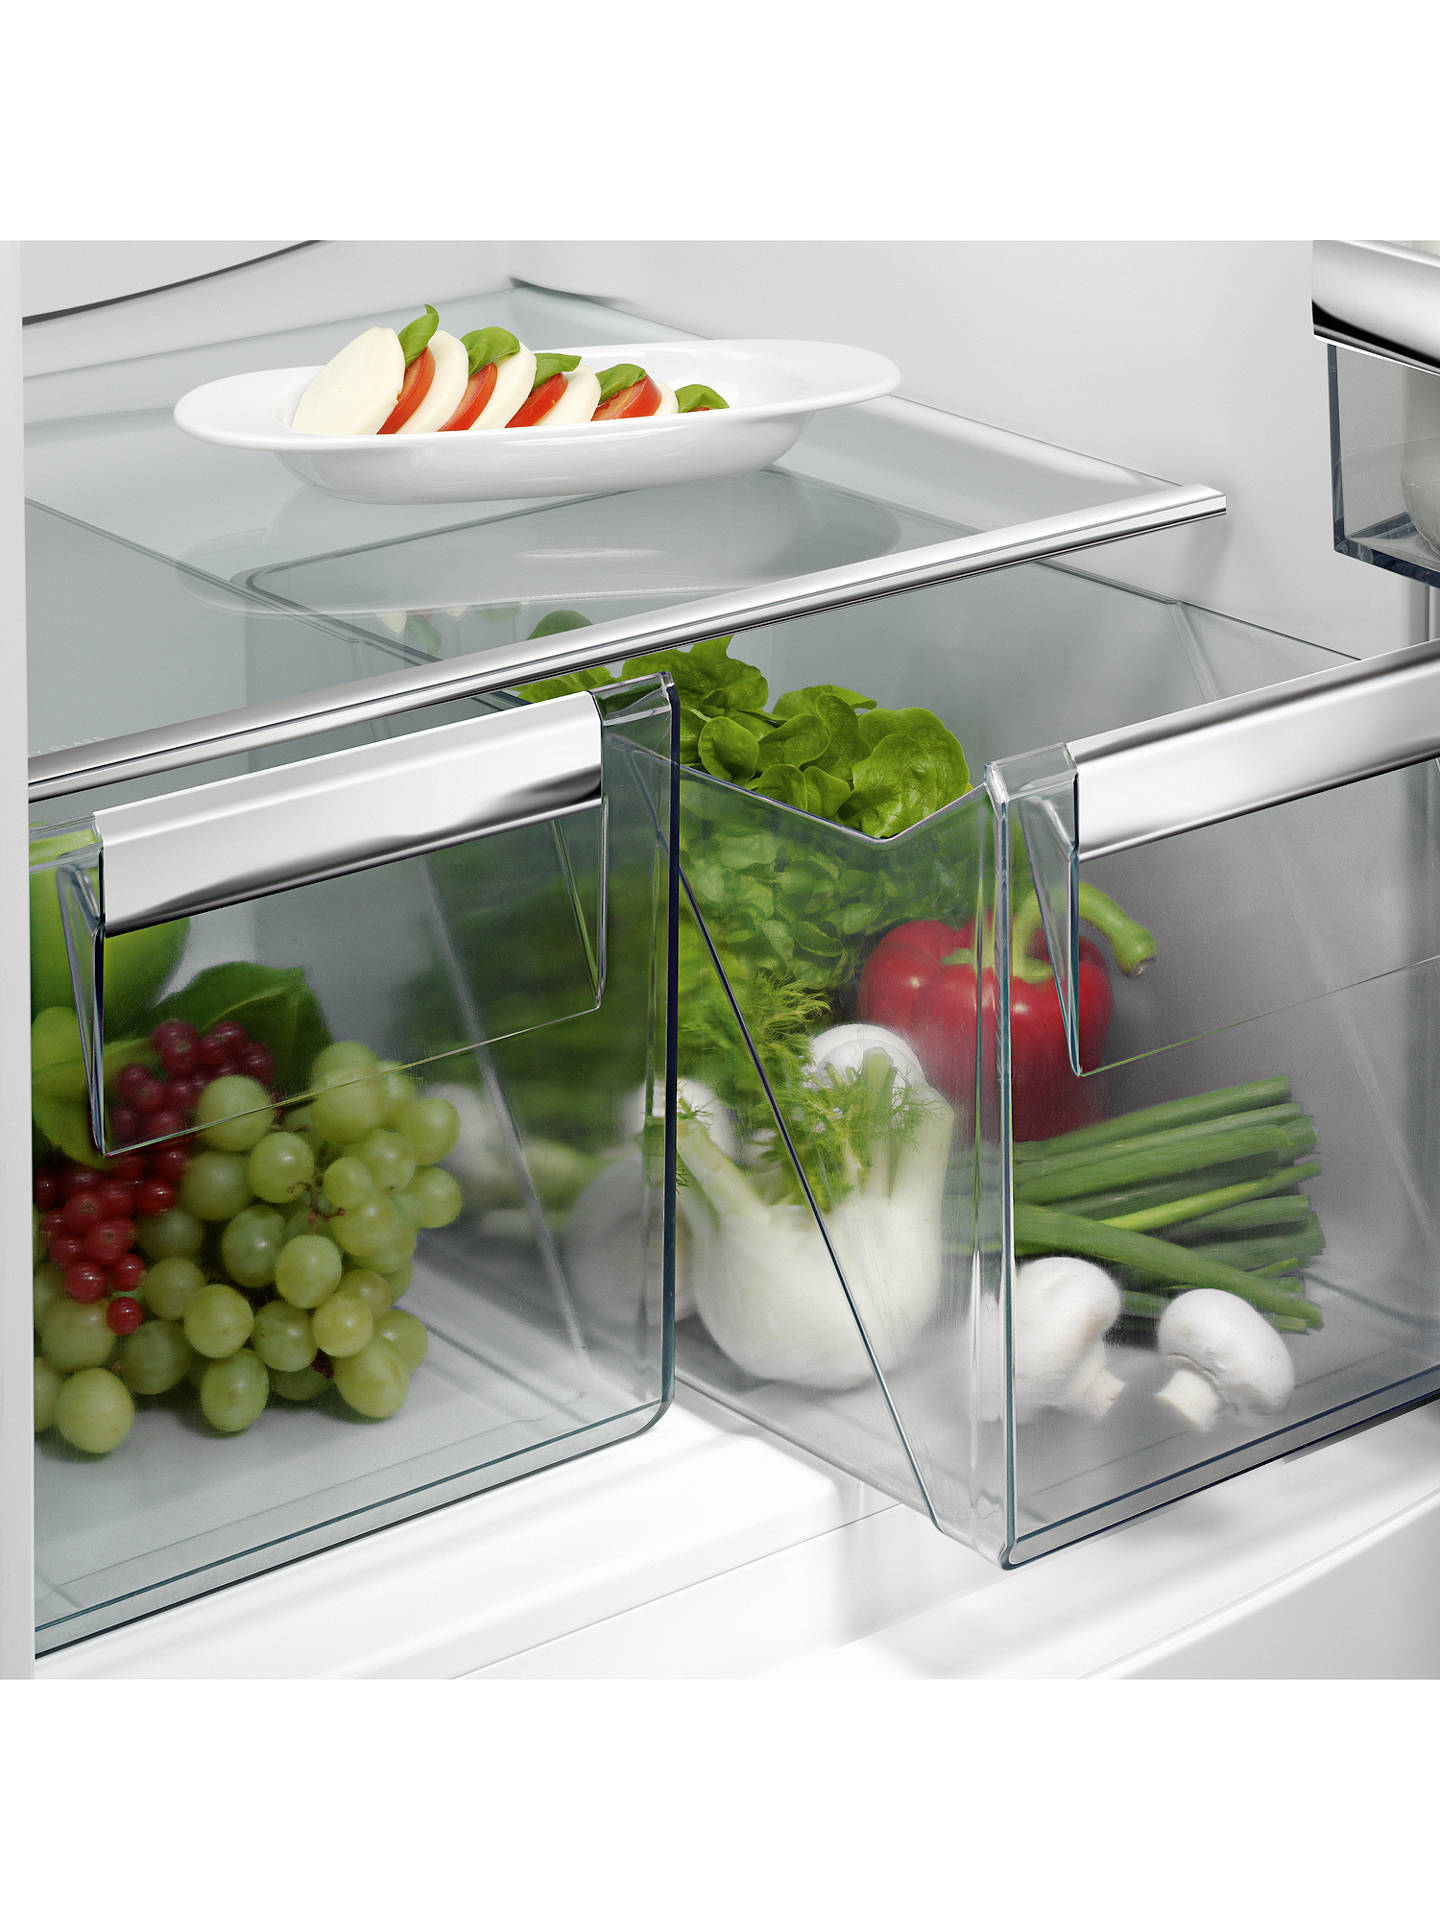 BuyAEG SCE8182VTS Integrated Fridge Freezer, A++ Energy Rating, 54cm Wide, White Online at johnlewis.com